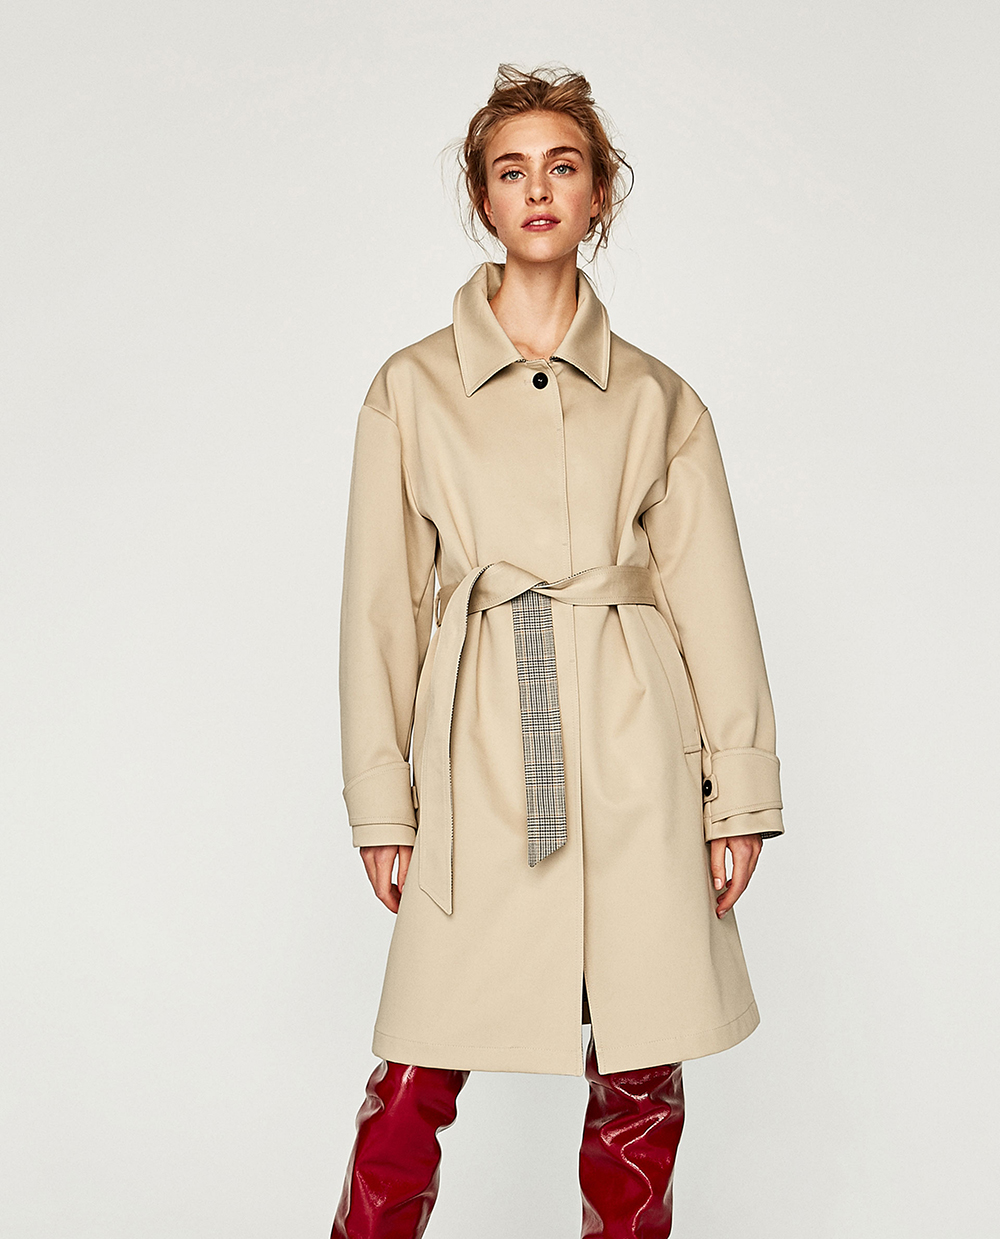 792dafd7 Oversized, plaid, asymmetrical, linen, faux suede . . . Zara has all the trench  coats right now and I'm absolutely convinced that one can never have too ...